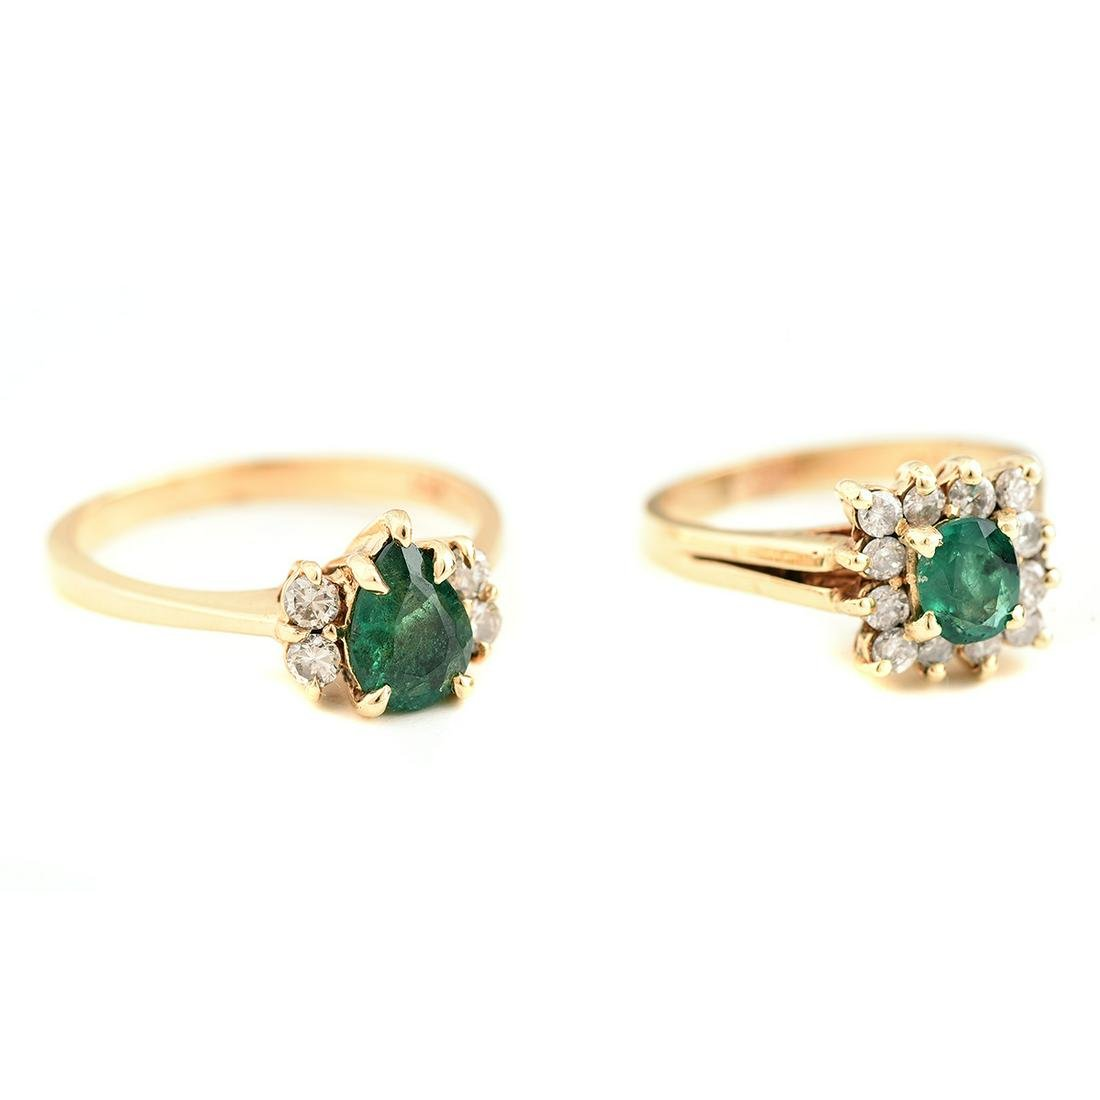 Collection of Two Emerald, Diamond, 14k Yellow Gold